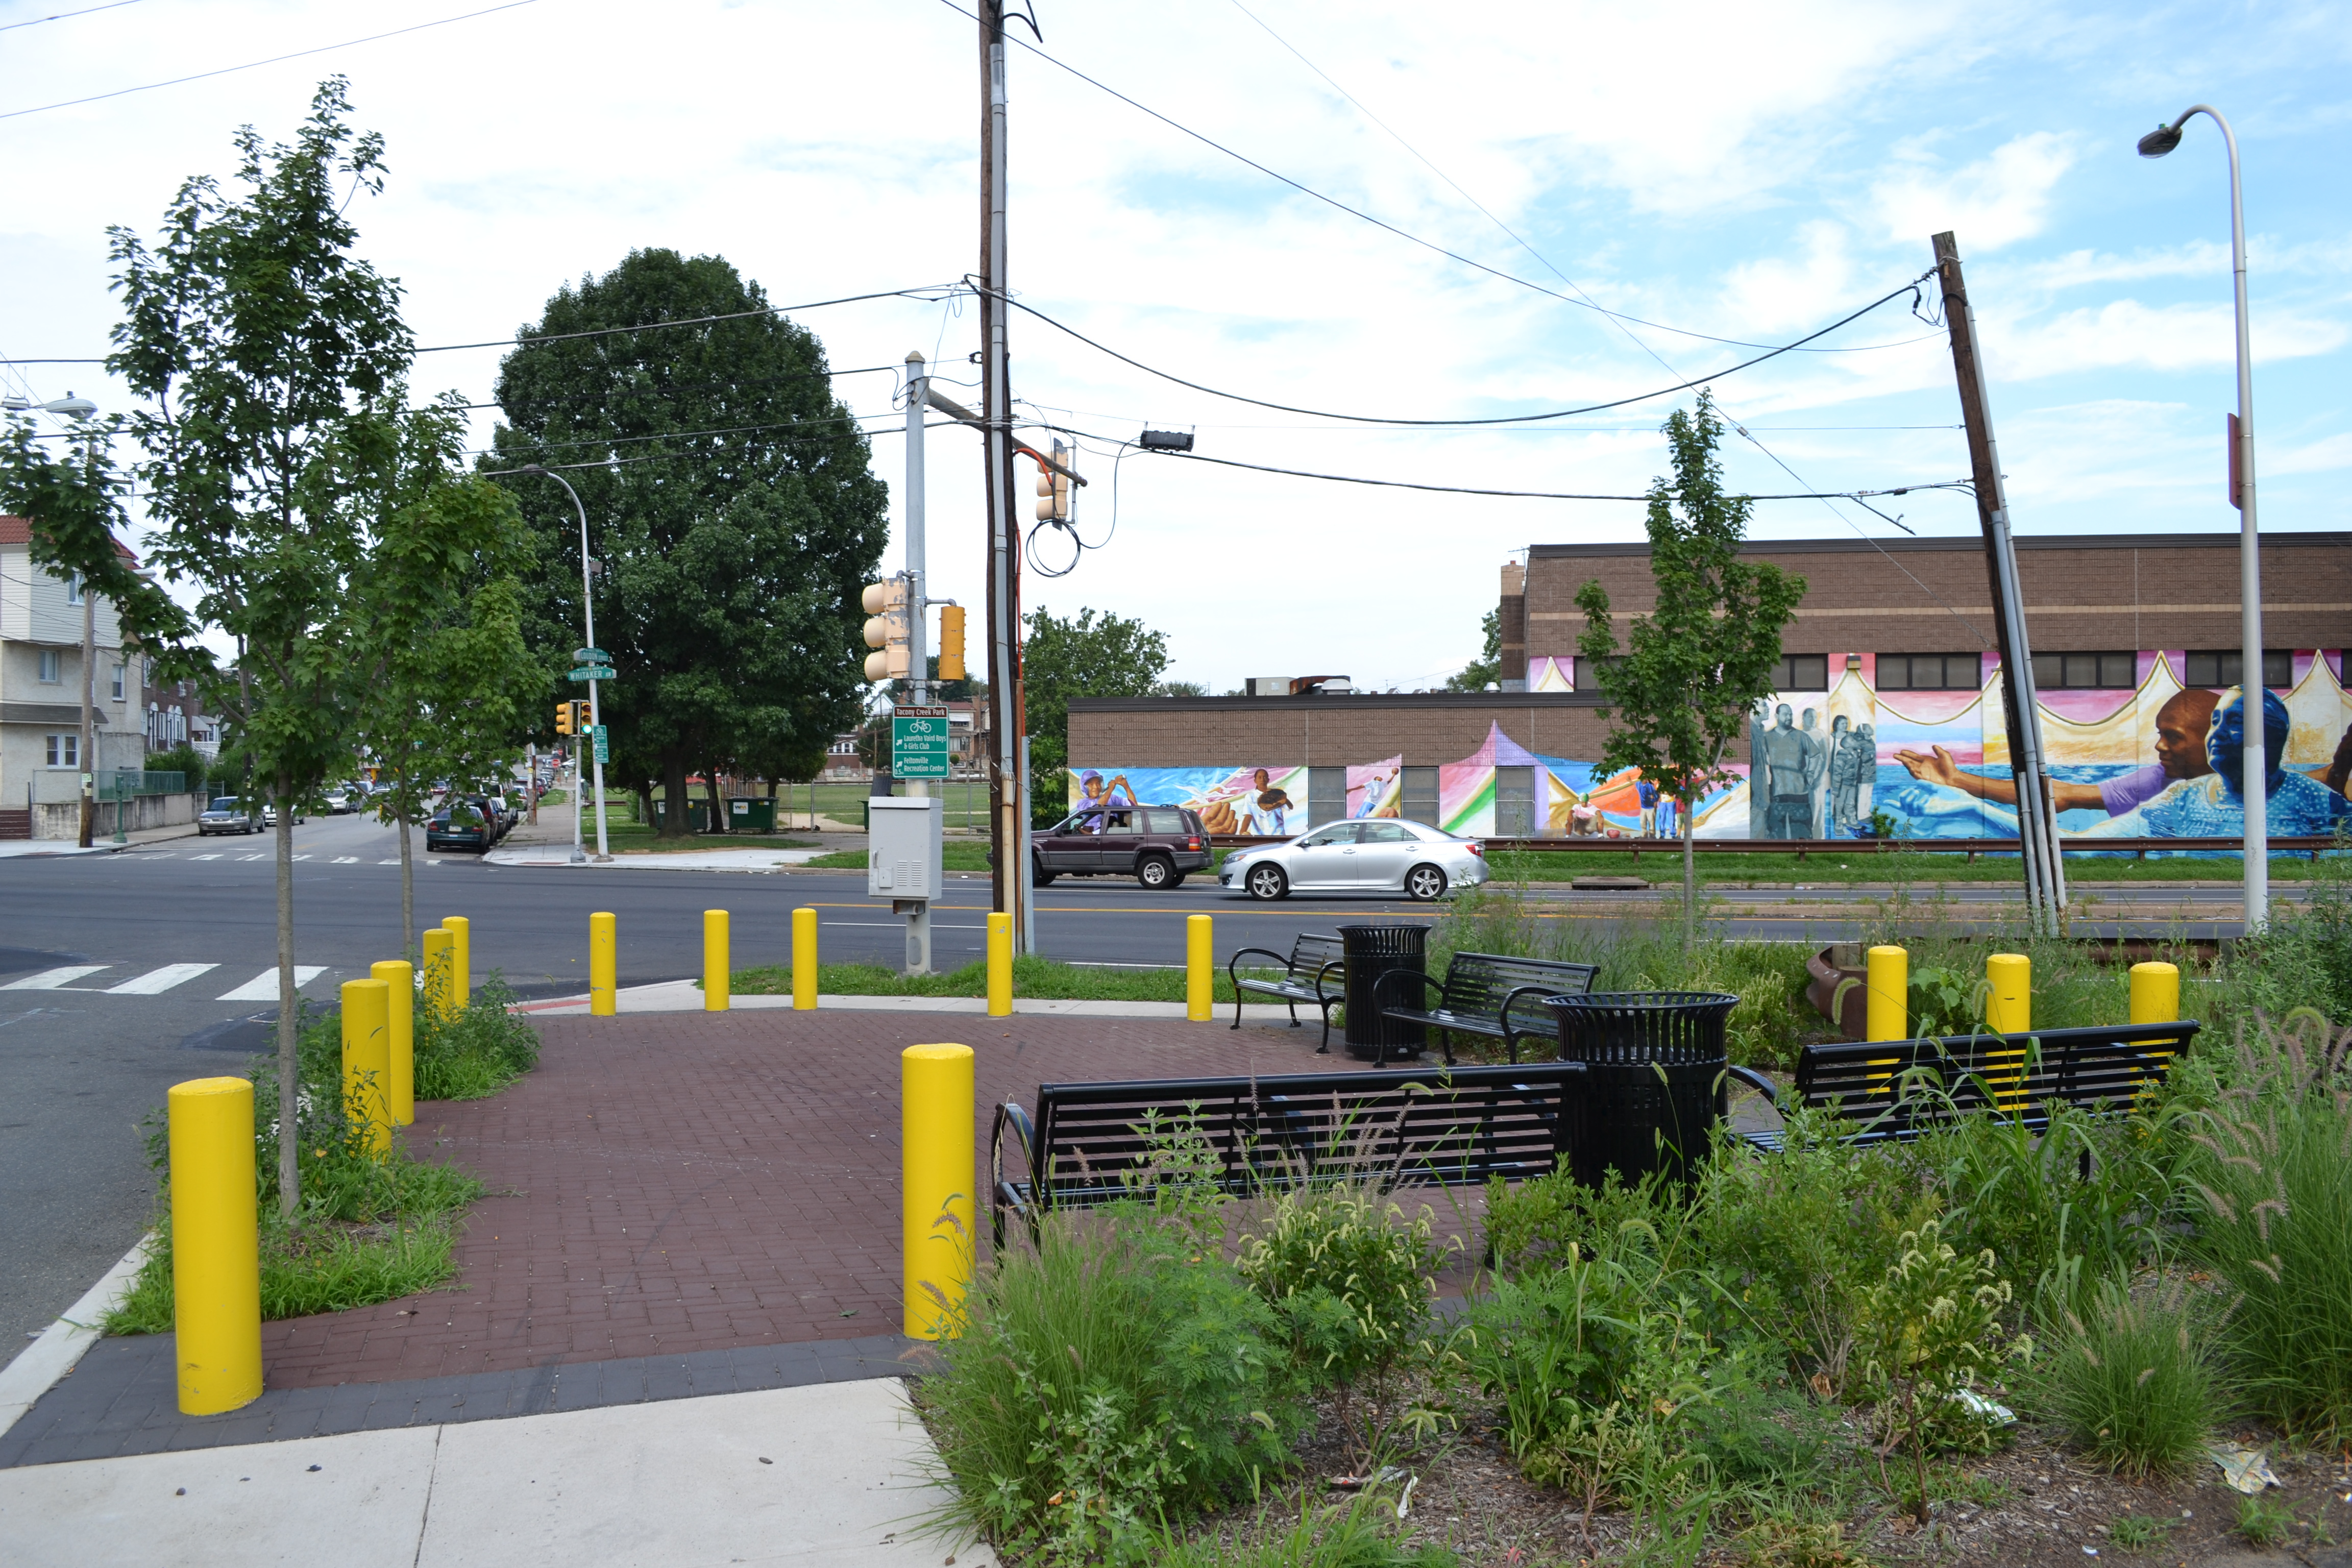 Tacony Creek Trail, Four neighborhood gateways provide access to the trail